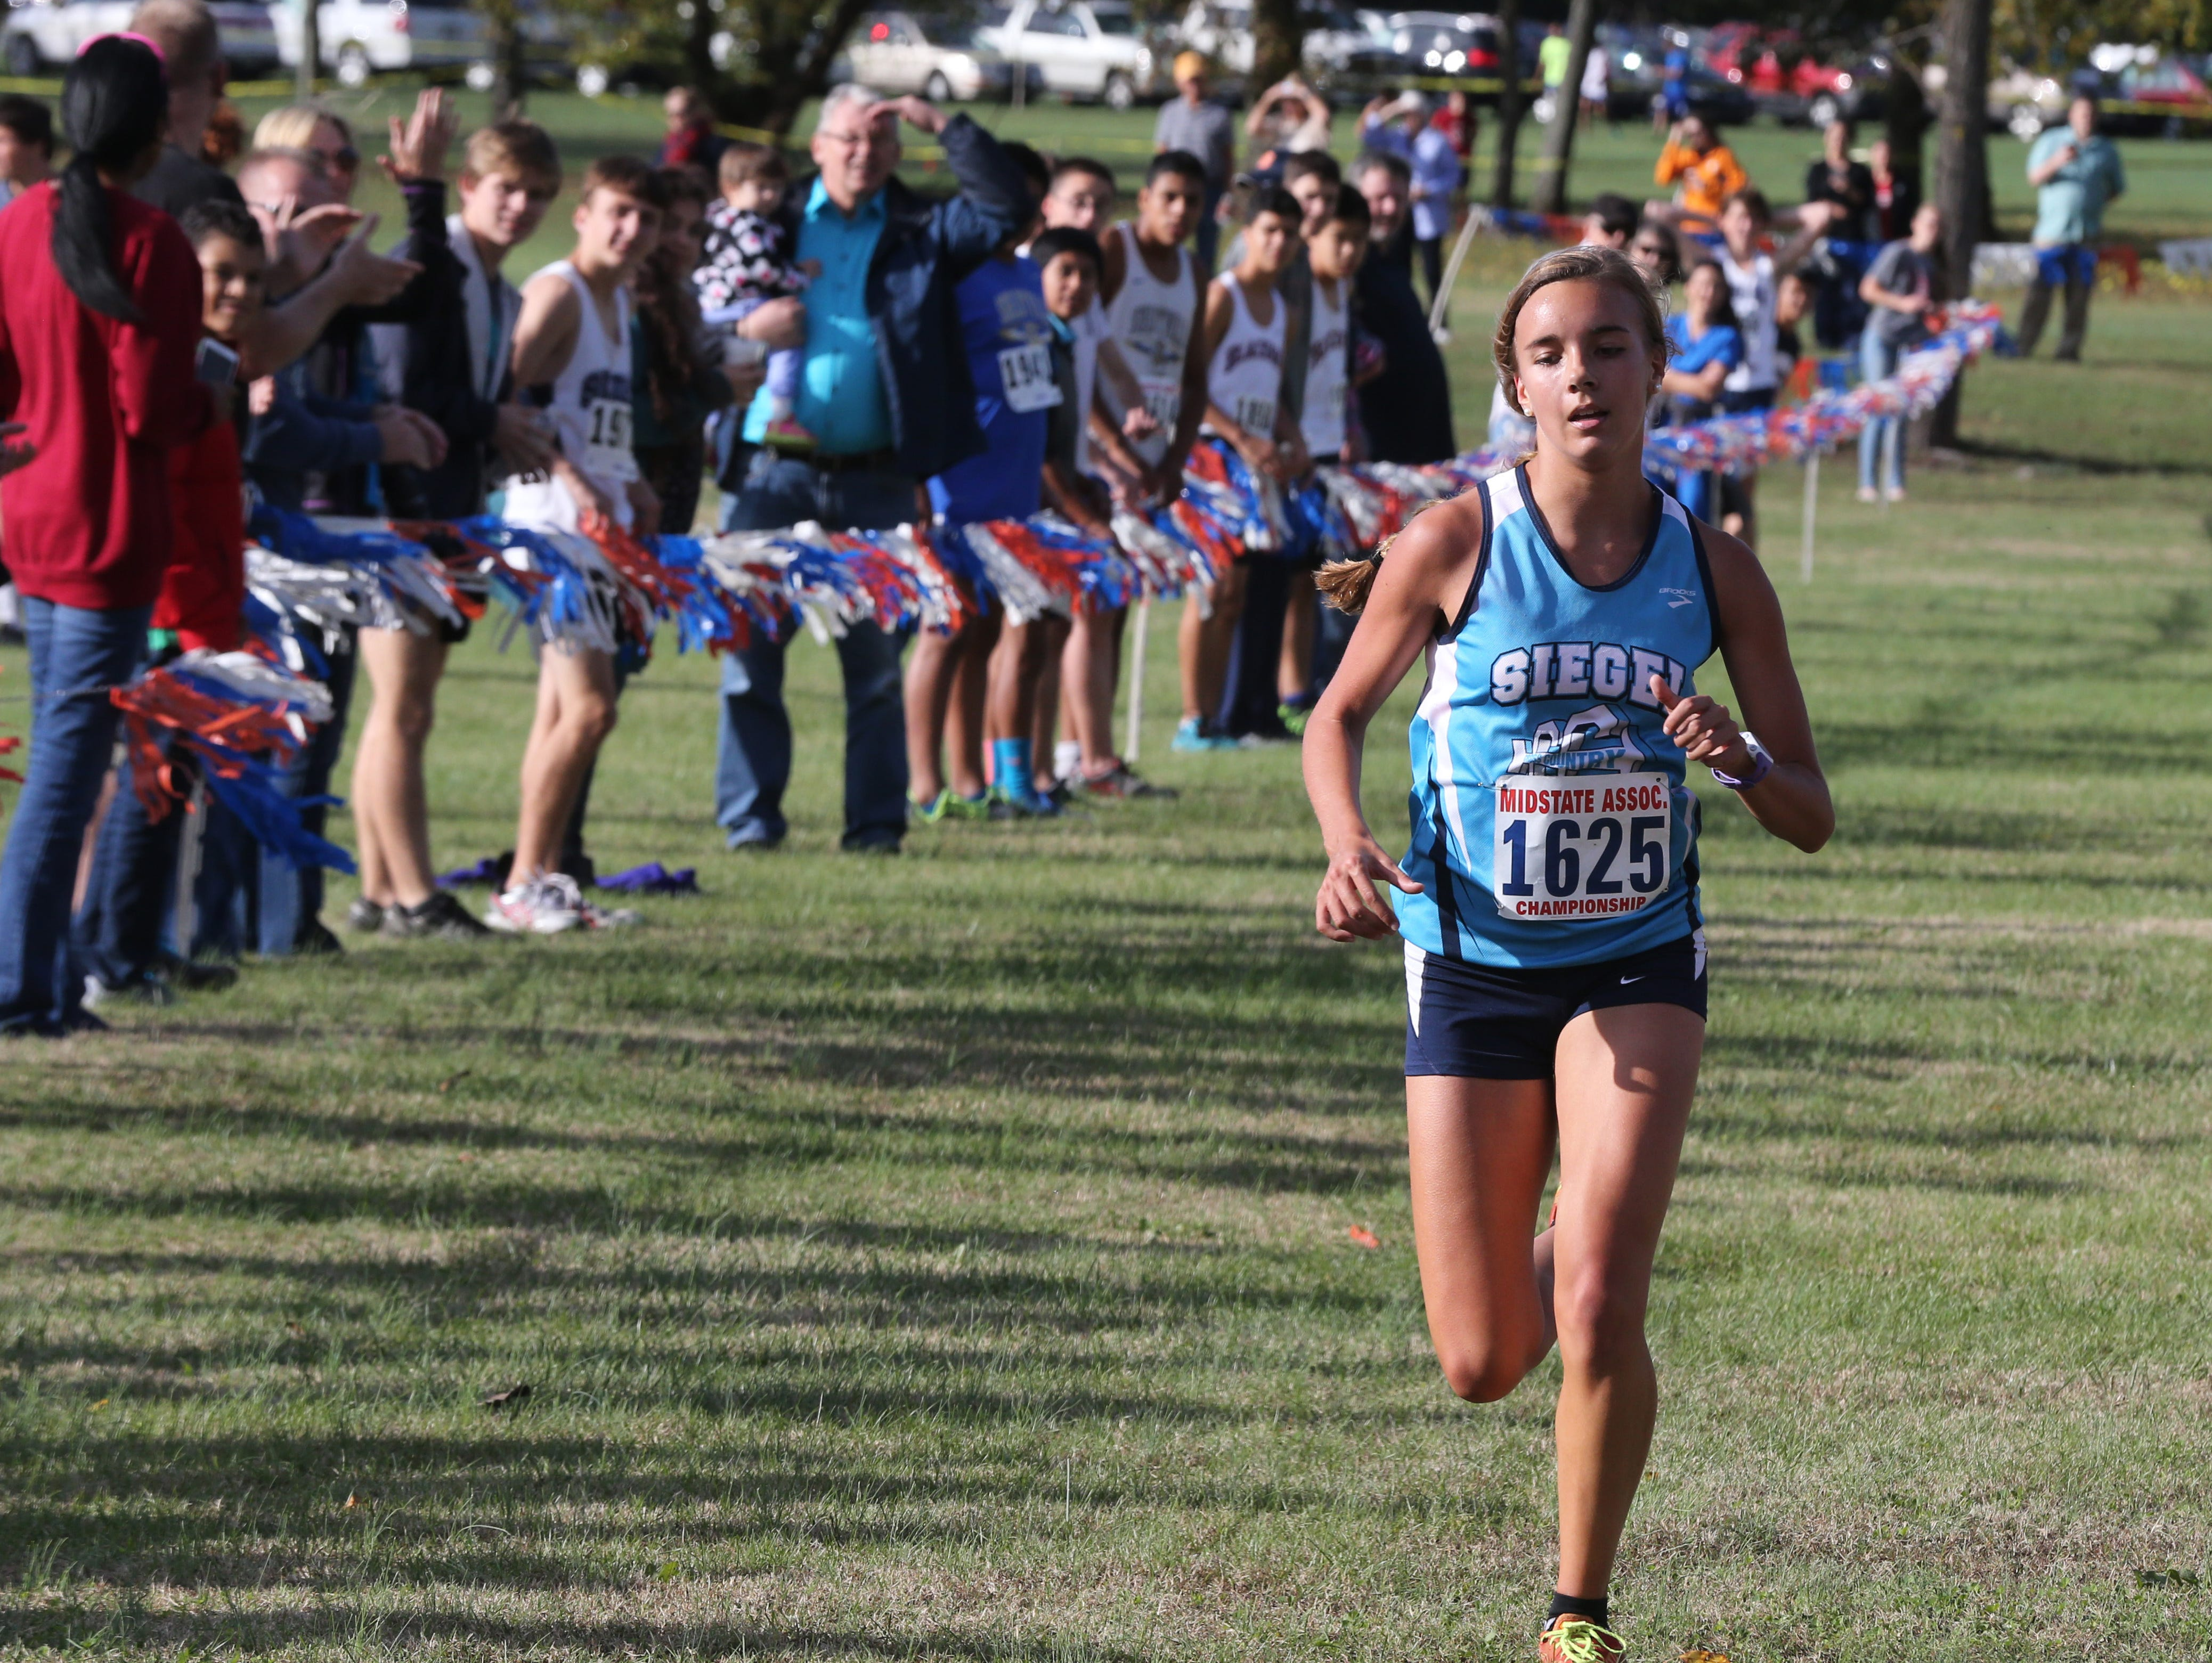 Siegel senior Victoria Simmons placed second at Saturday's Tennessee Classic.